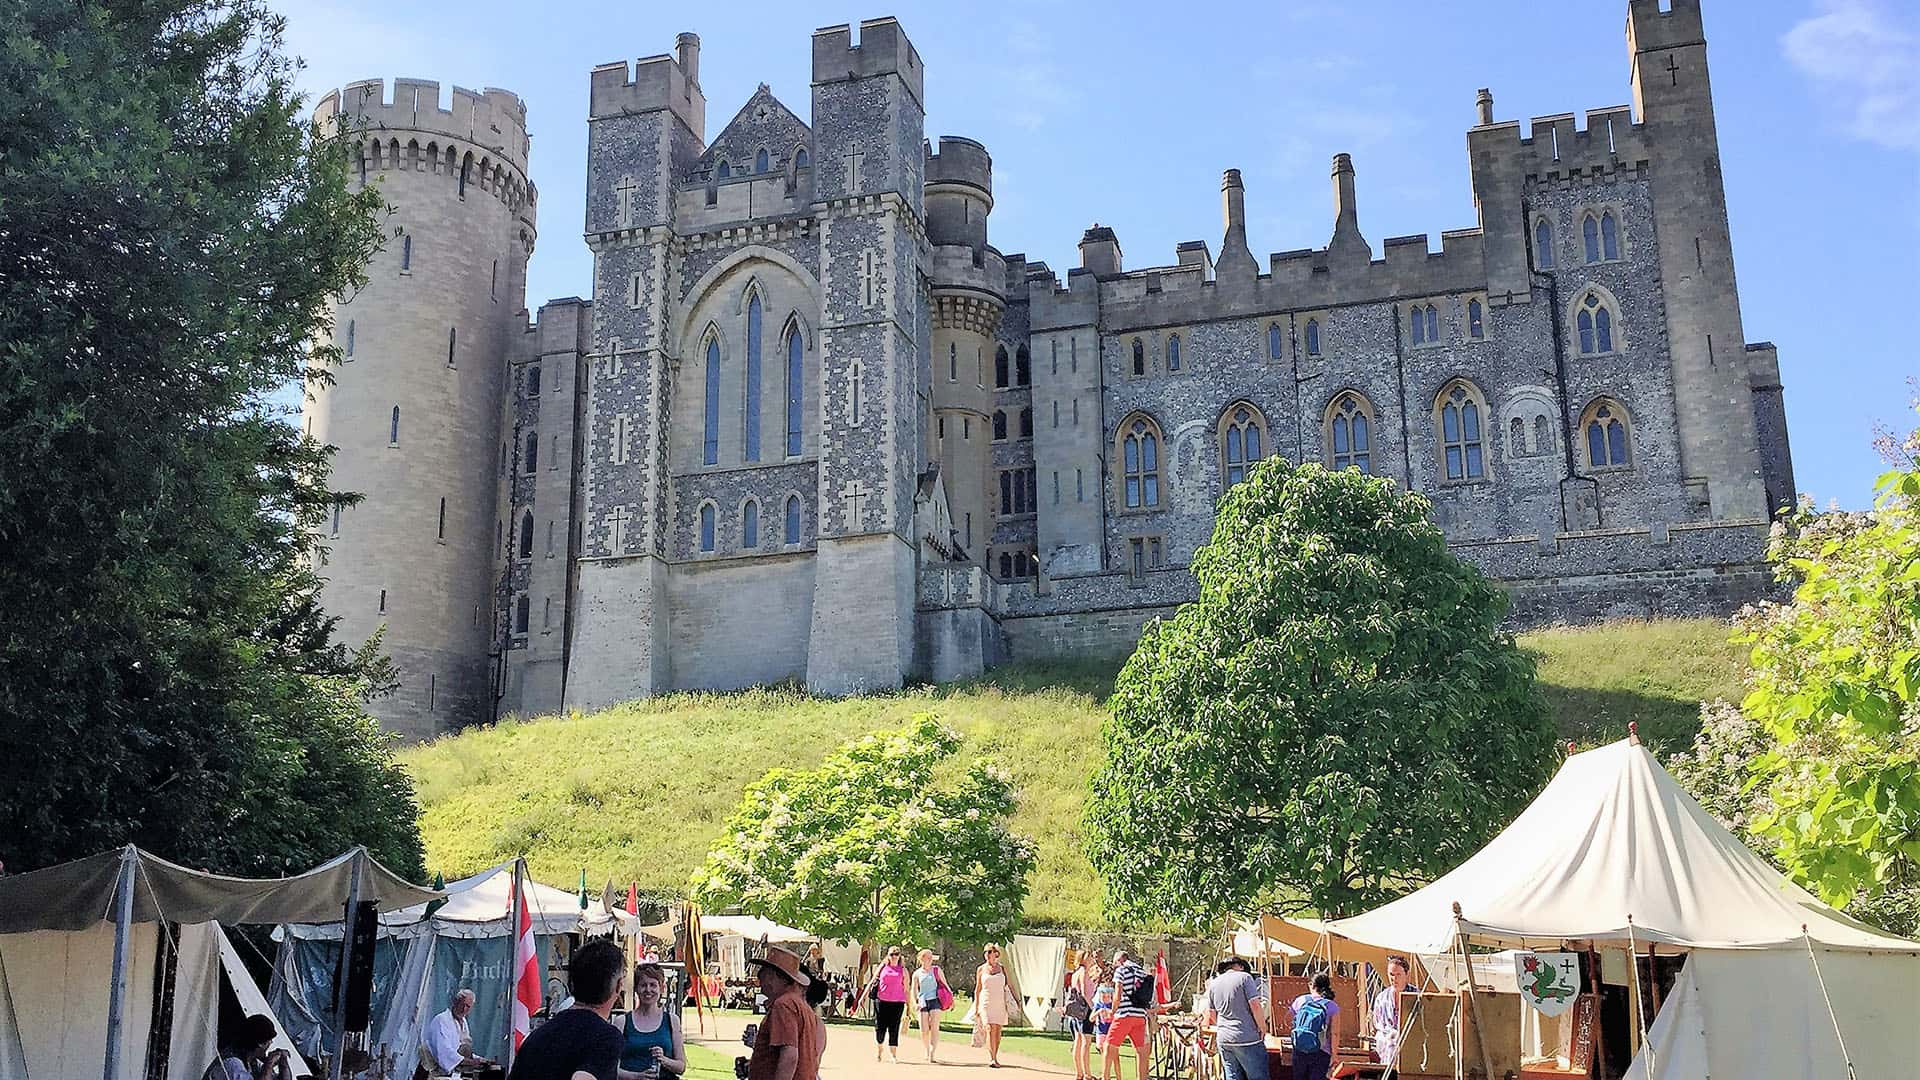 Arundel Castle up on the hill